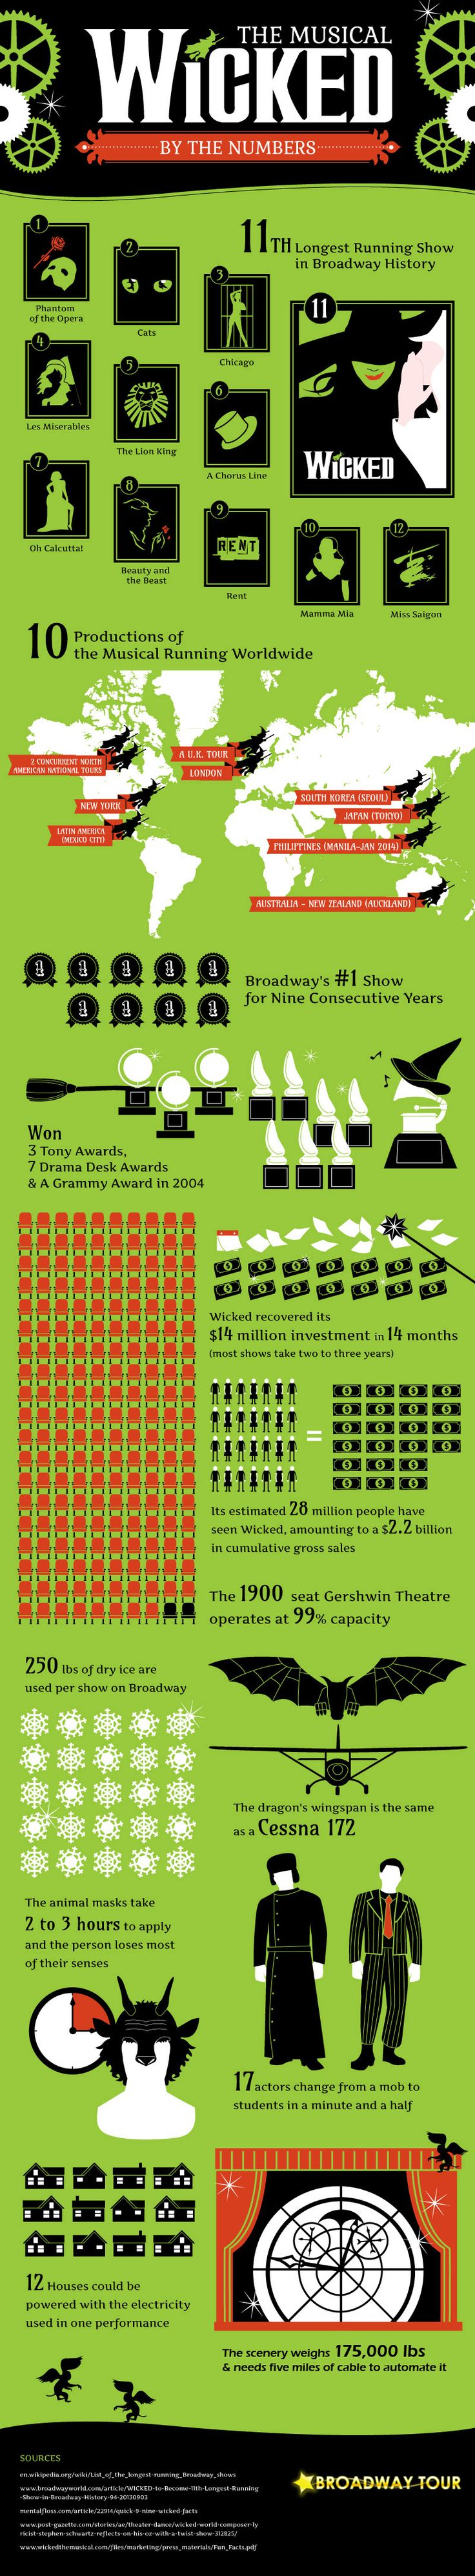 Wicked by the Numbers | Broadway Tour info graphic. Oh how I love Wicked!